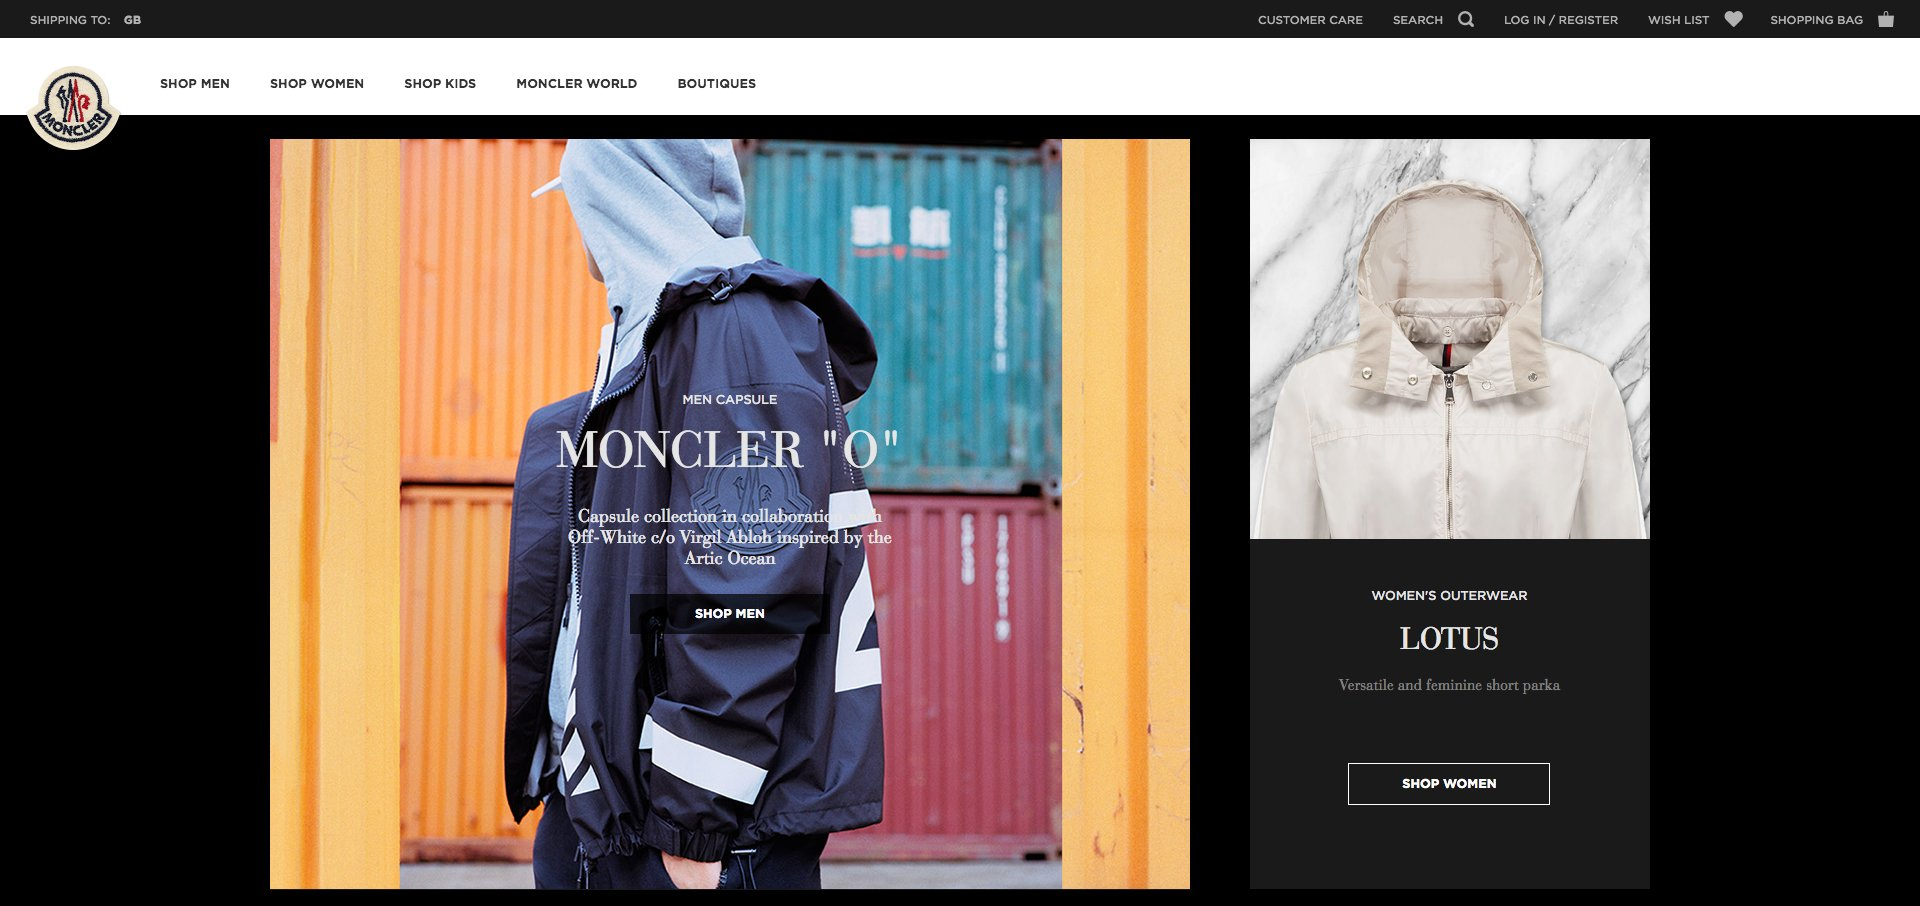 Luxury website inspiration: Moncler